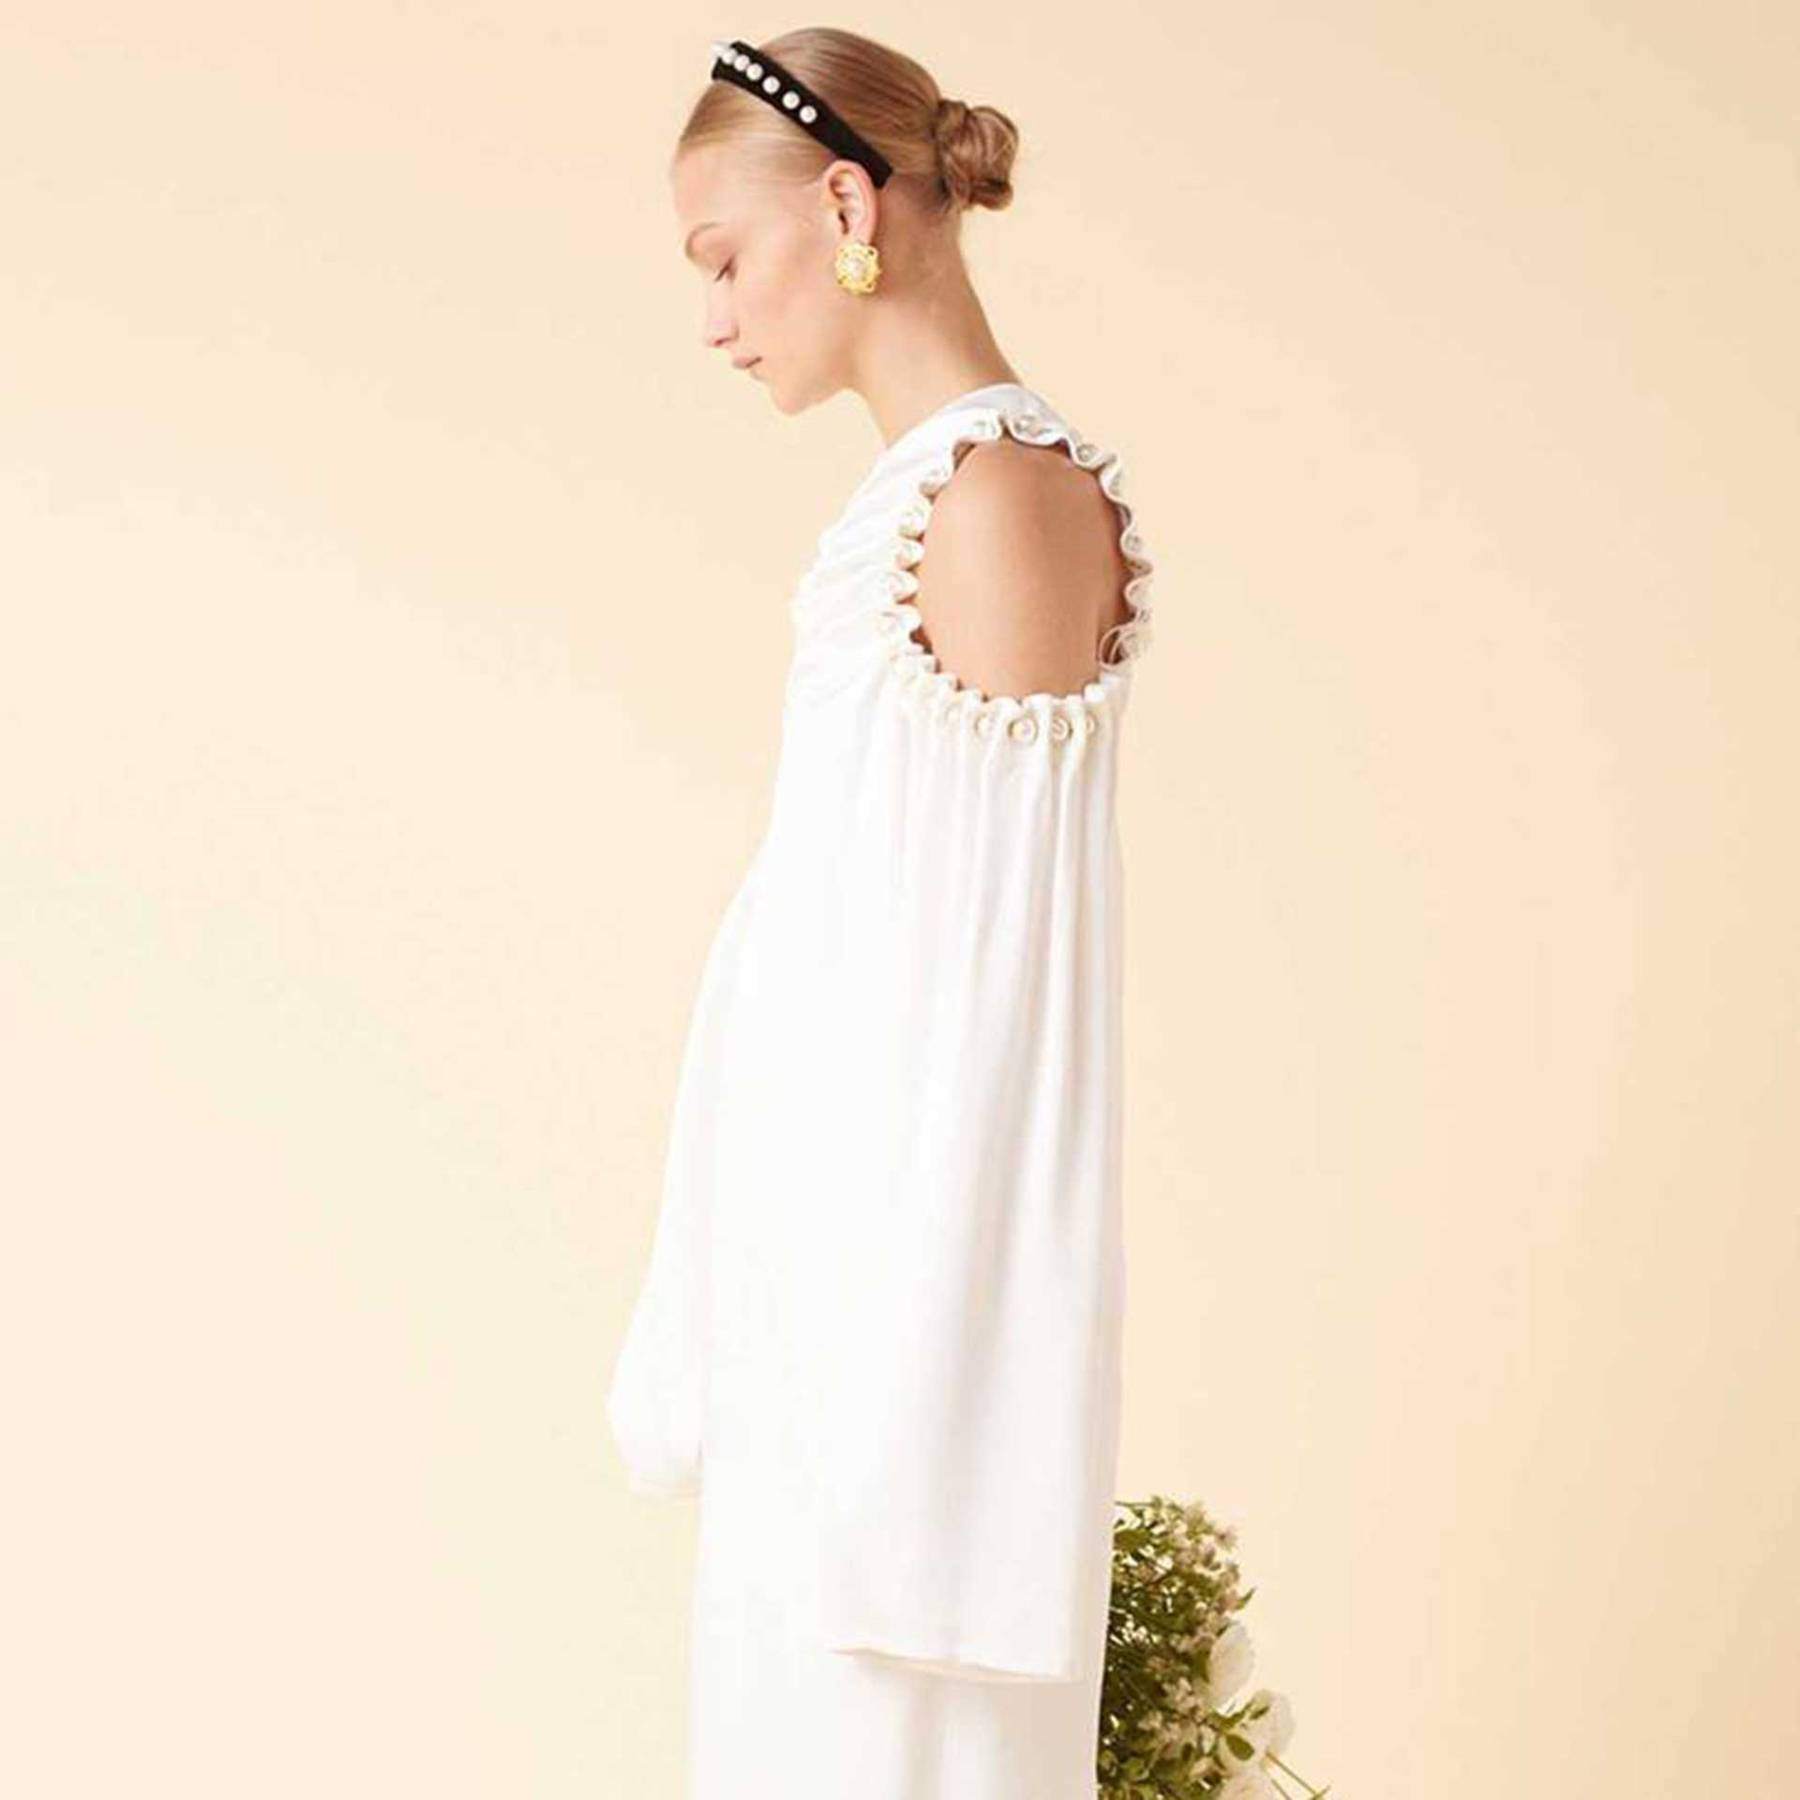 7d3fe1712 Mother Of Pearl Launches Relaxed Wedding Dress Line | British Vogue